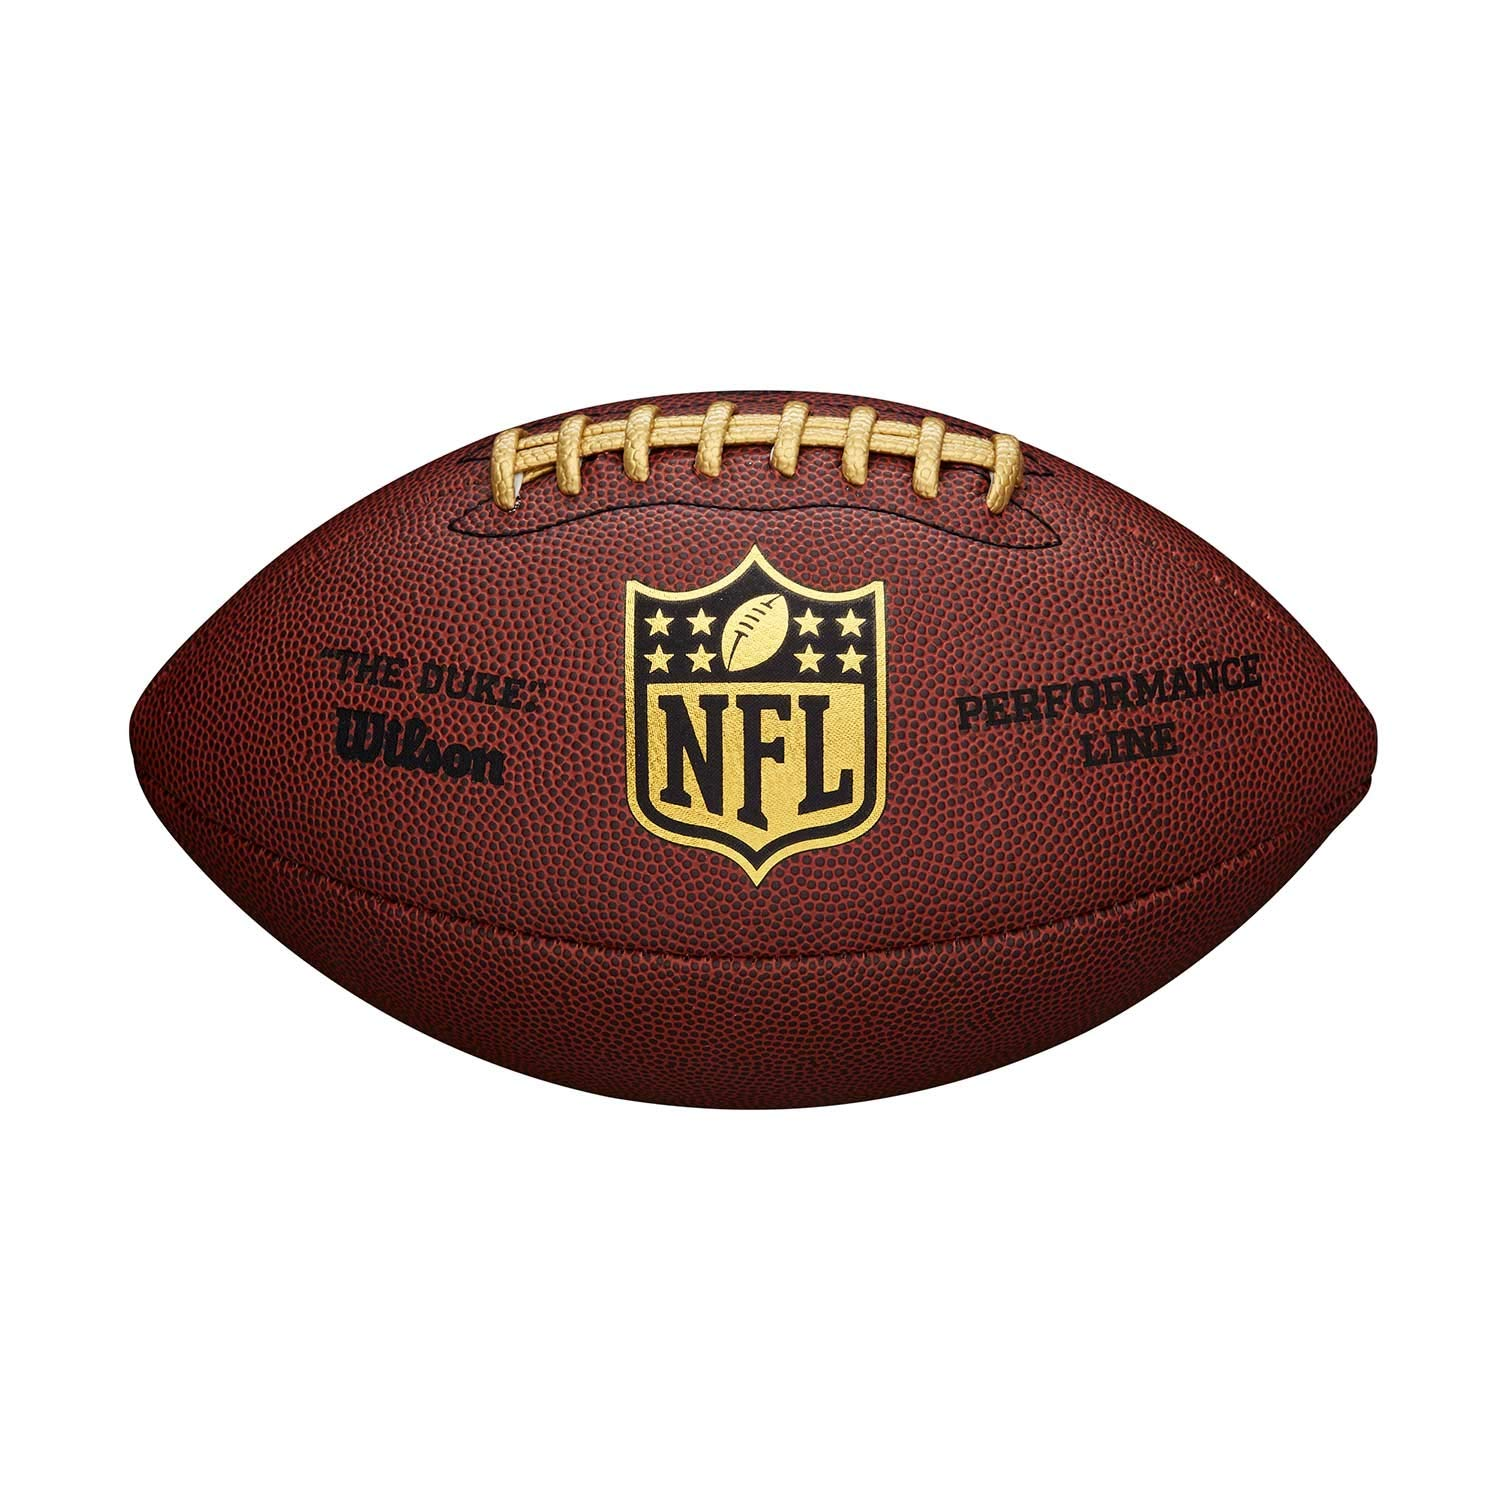 WILSON NFL Replica Game Ball The Duke Performance Line